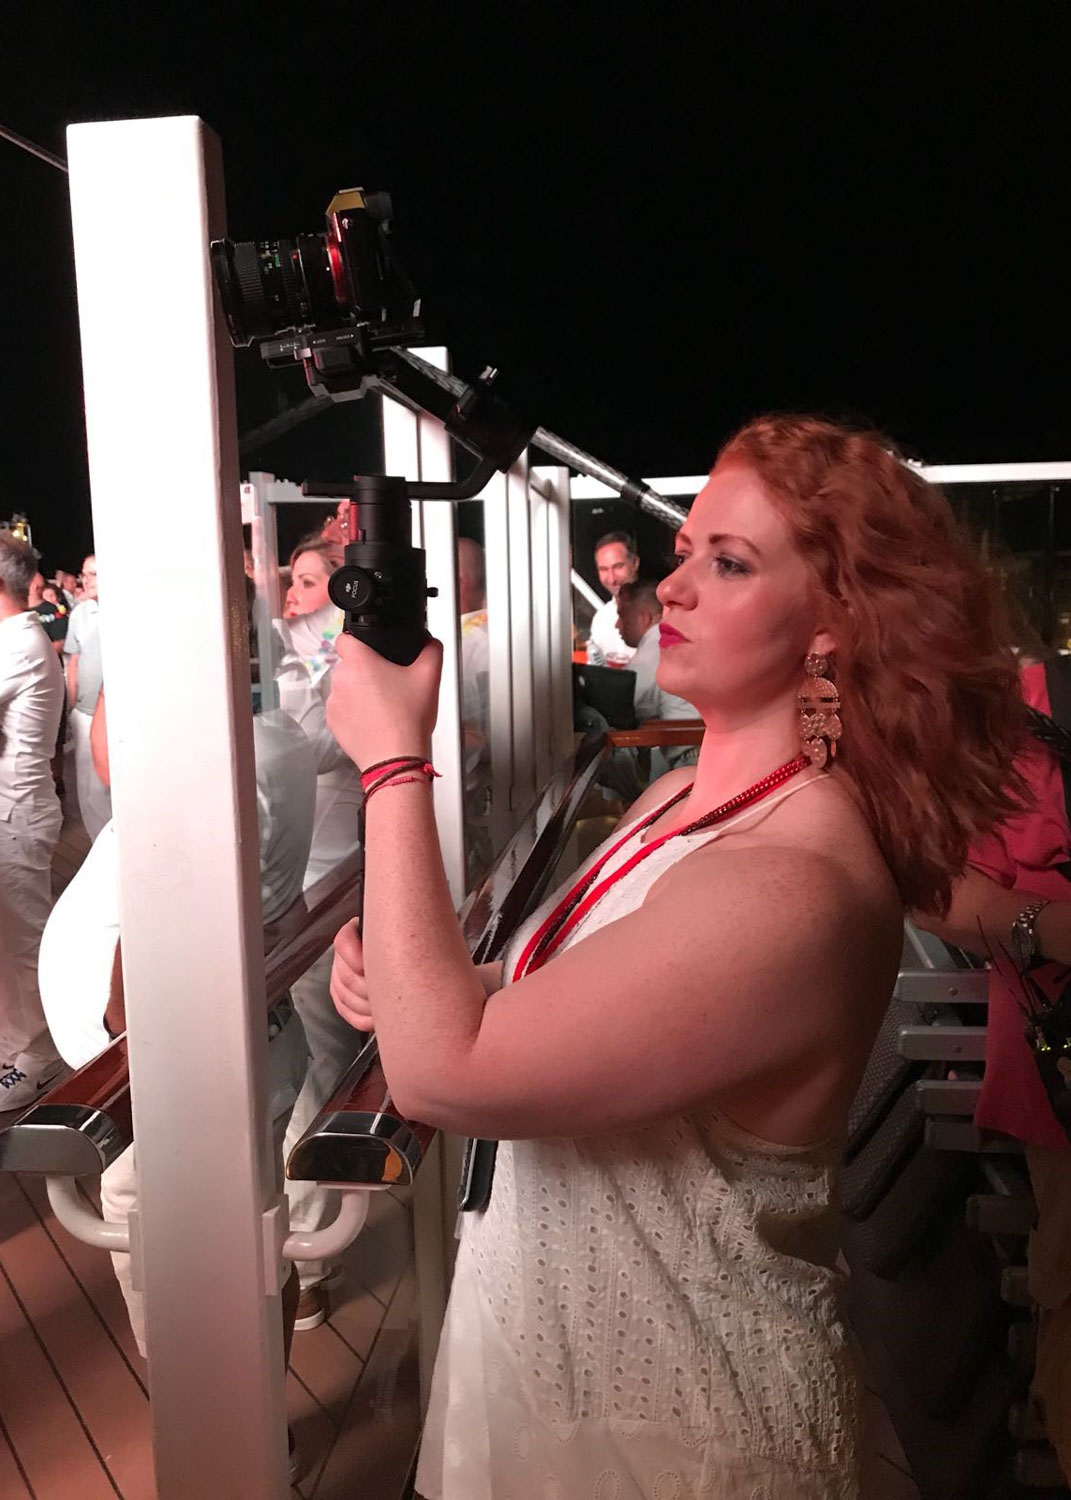 Filming for Secrets of the Mega Cruise Ship